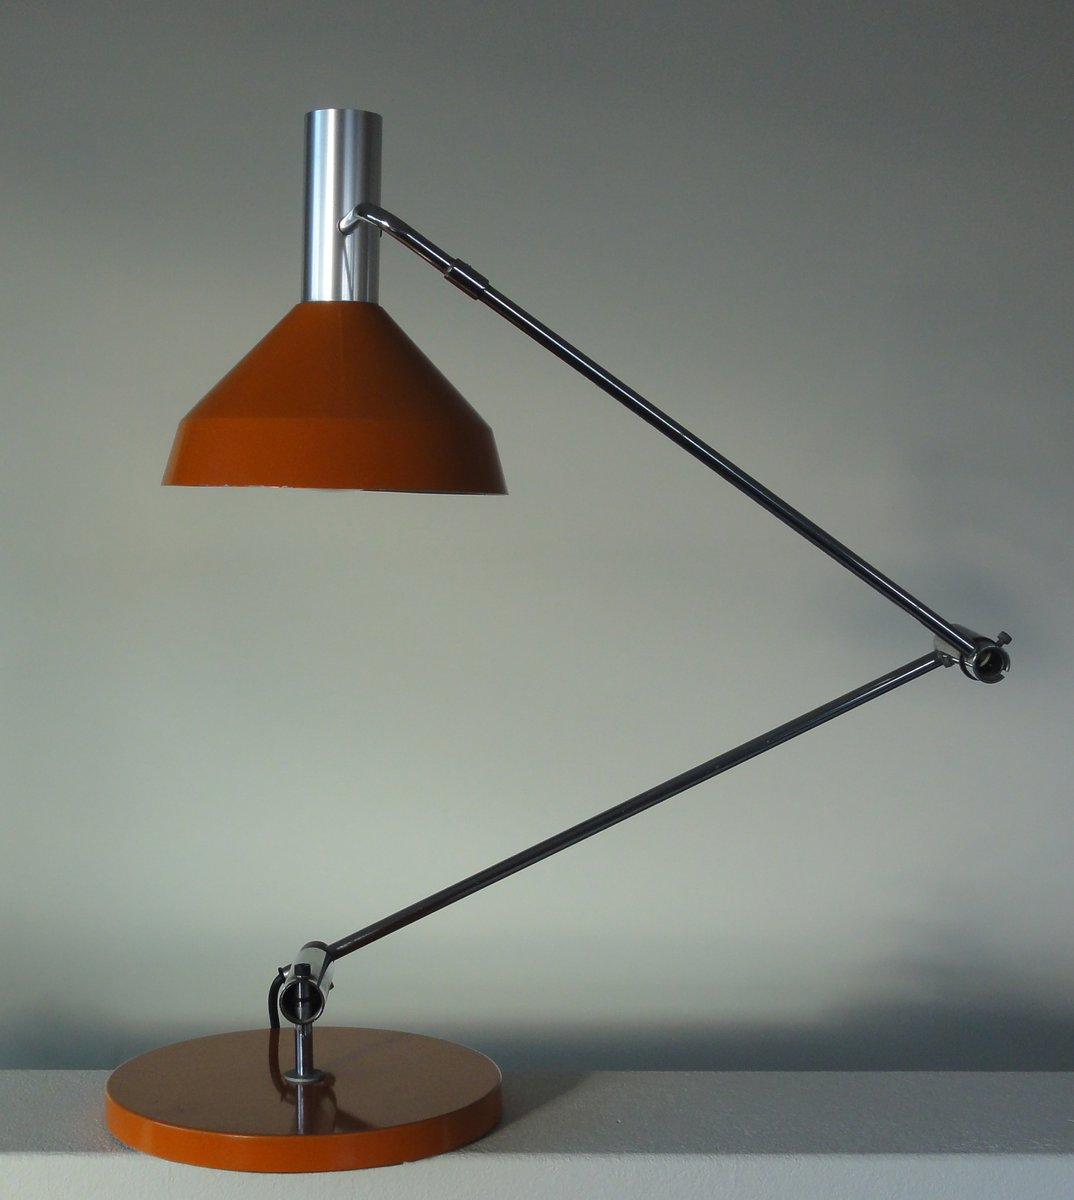 Modell Type 60 T Tischlampe in Orange von Rico & Rosemarie Baltensweil...